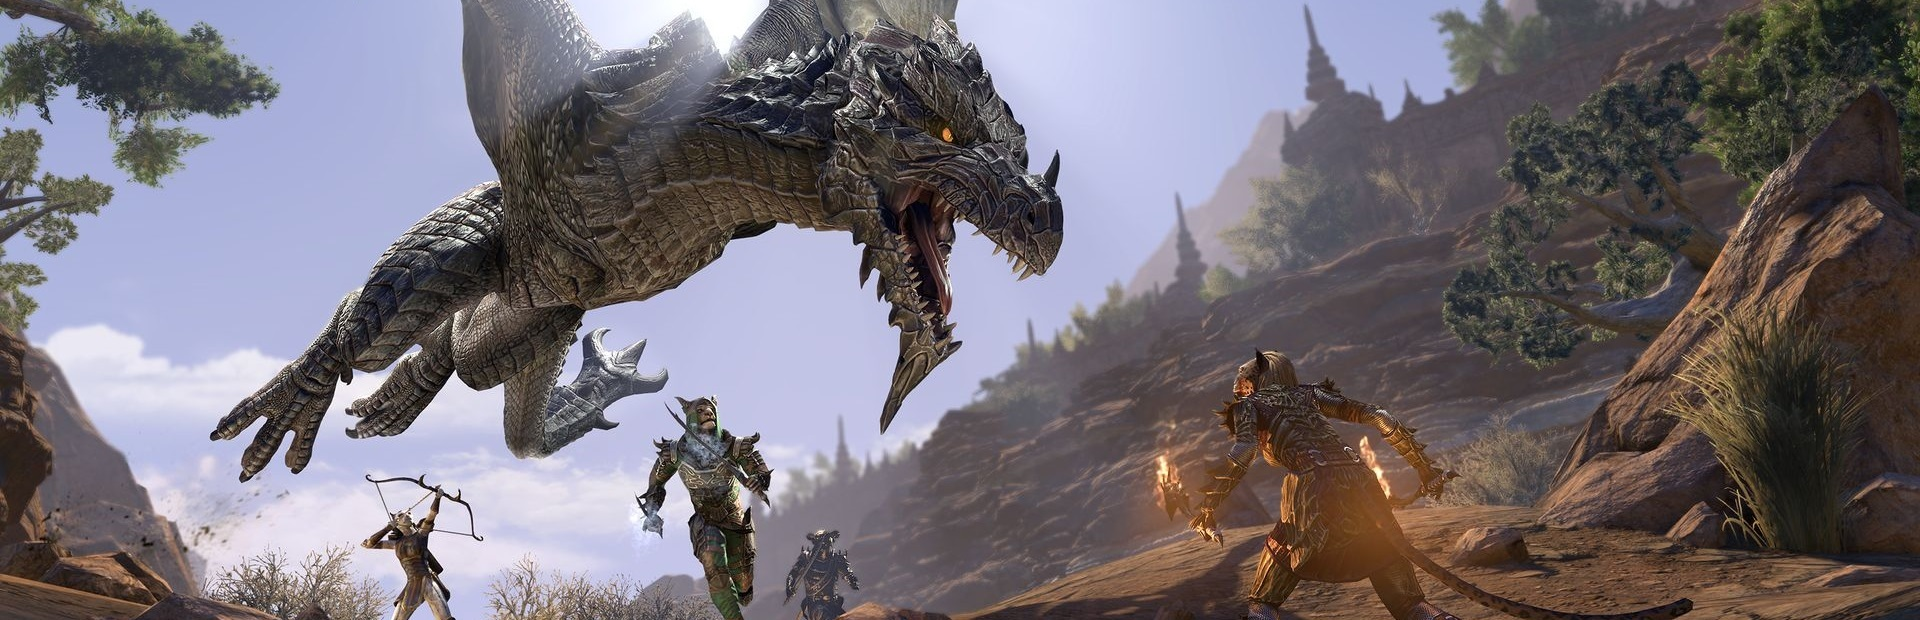 Communauté Steam :: The Elder Scrolls Online